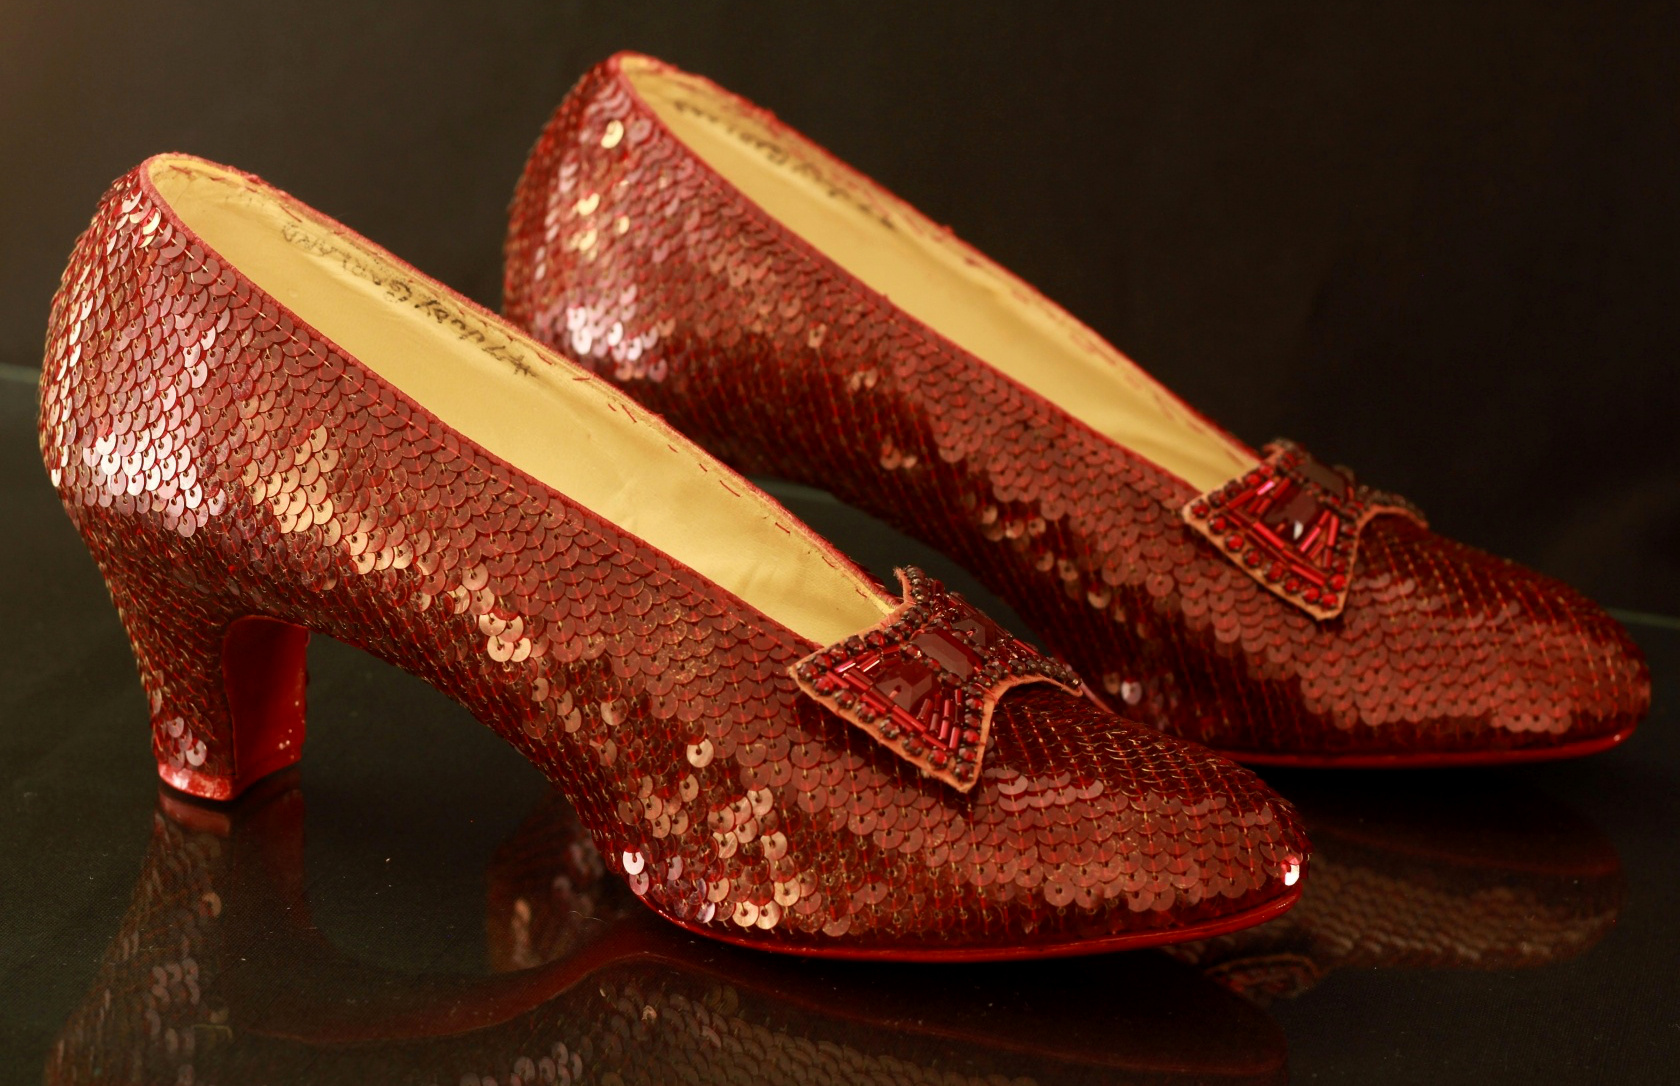 The-Wizard-of-Oz-Ruby-Slippers-3.jpg